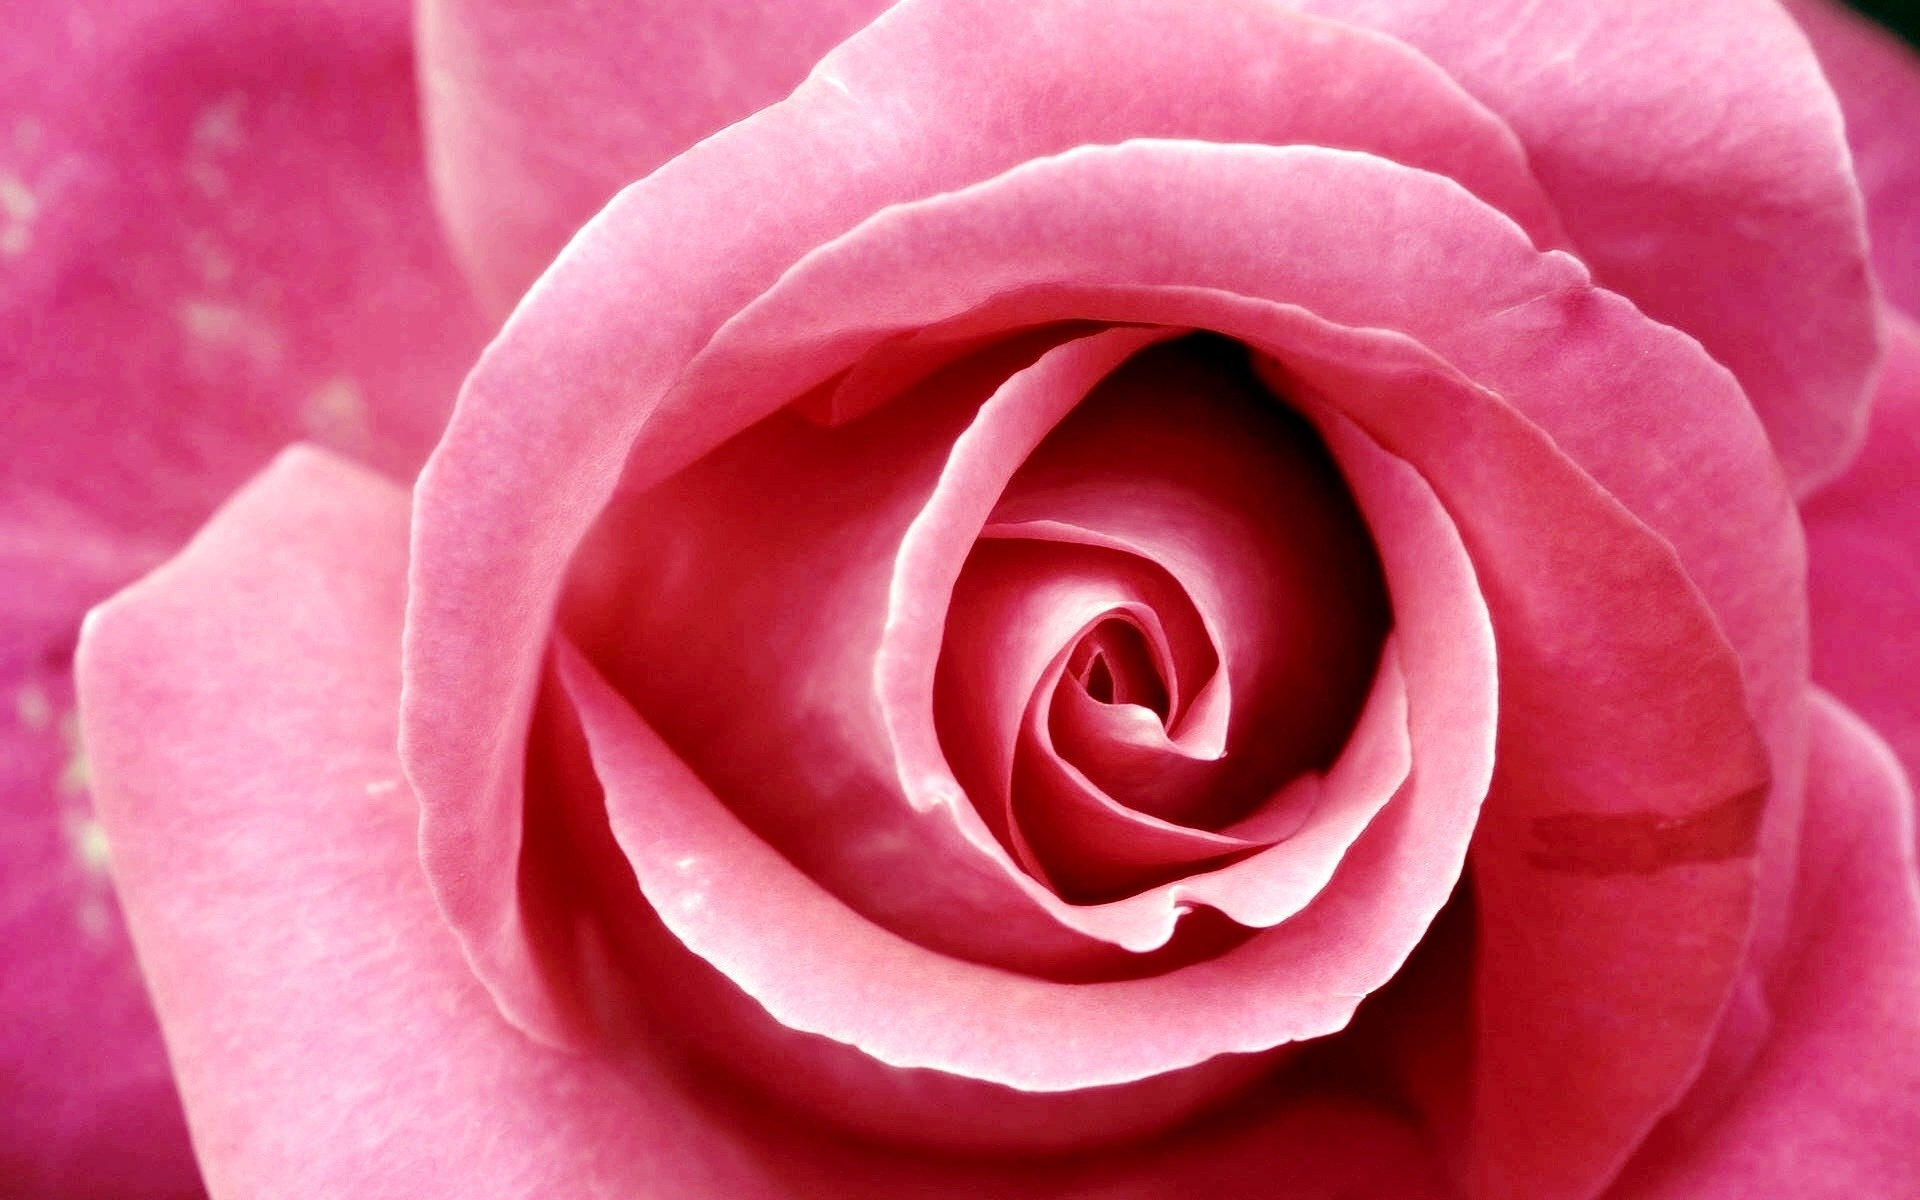 pink rose pictures download free | pixelstalk